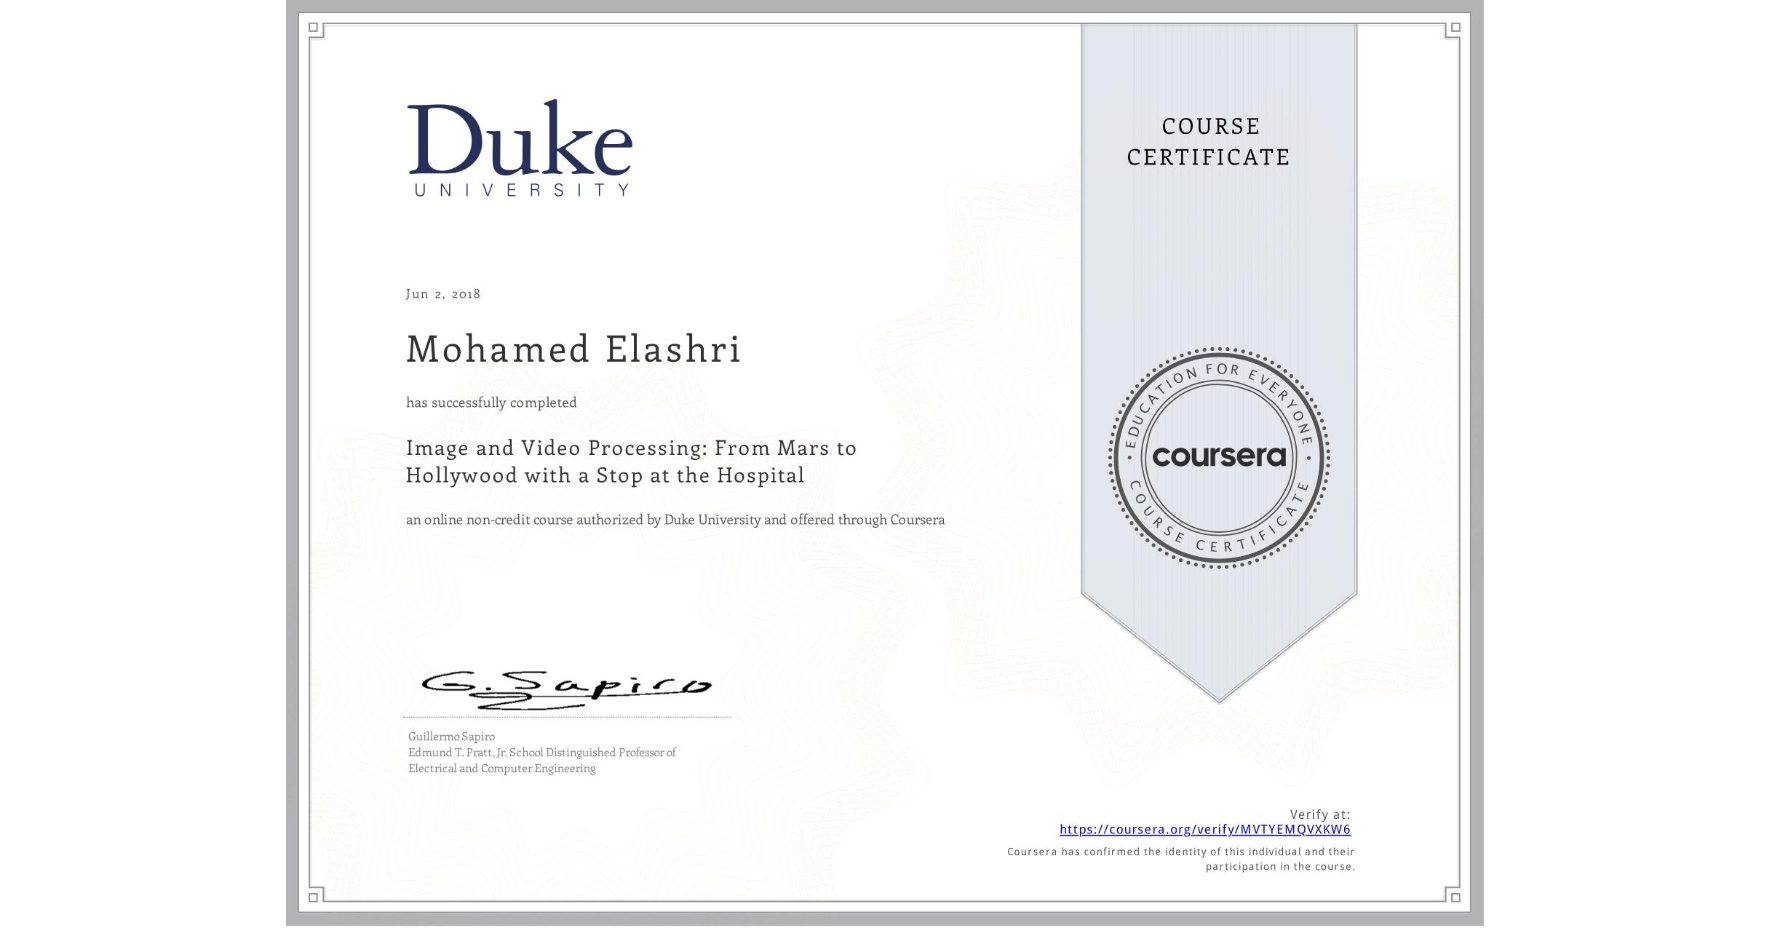 View certificate for Mohamed Elashri, Image and Video Processing: From Mars to Hollywood with a Stop at the Hospital, an online non-credit course authorized by Duke University and offered through Coursera